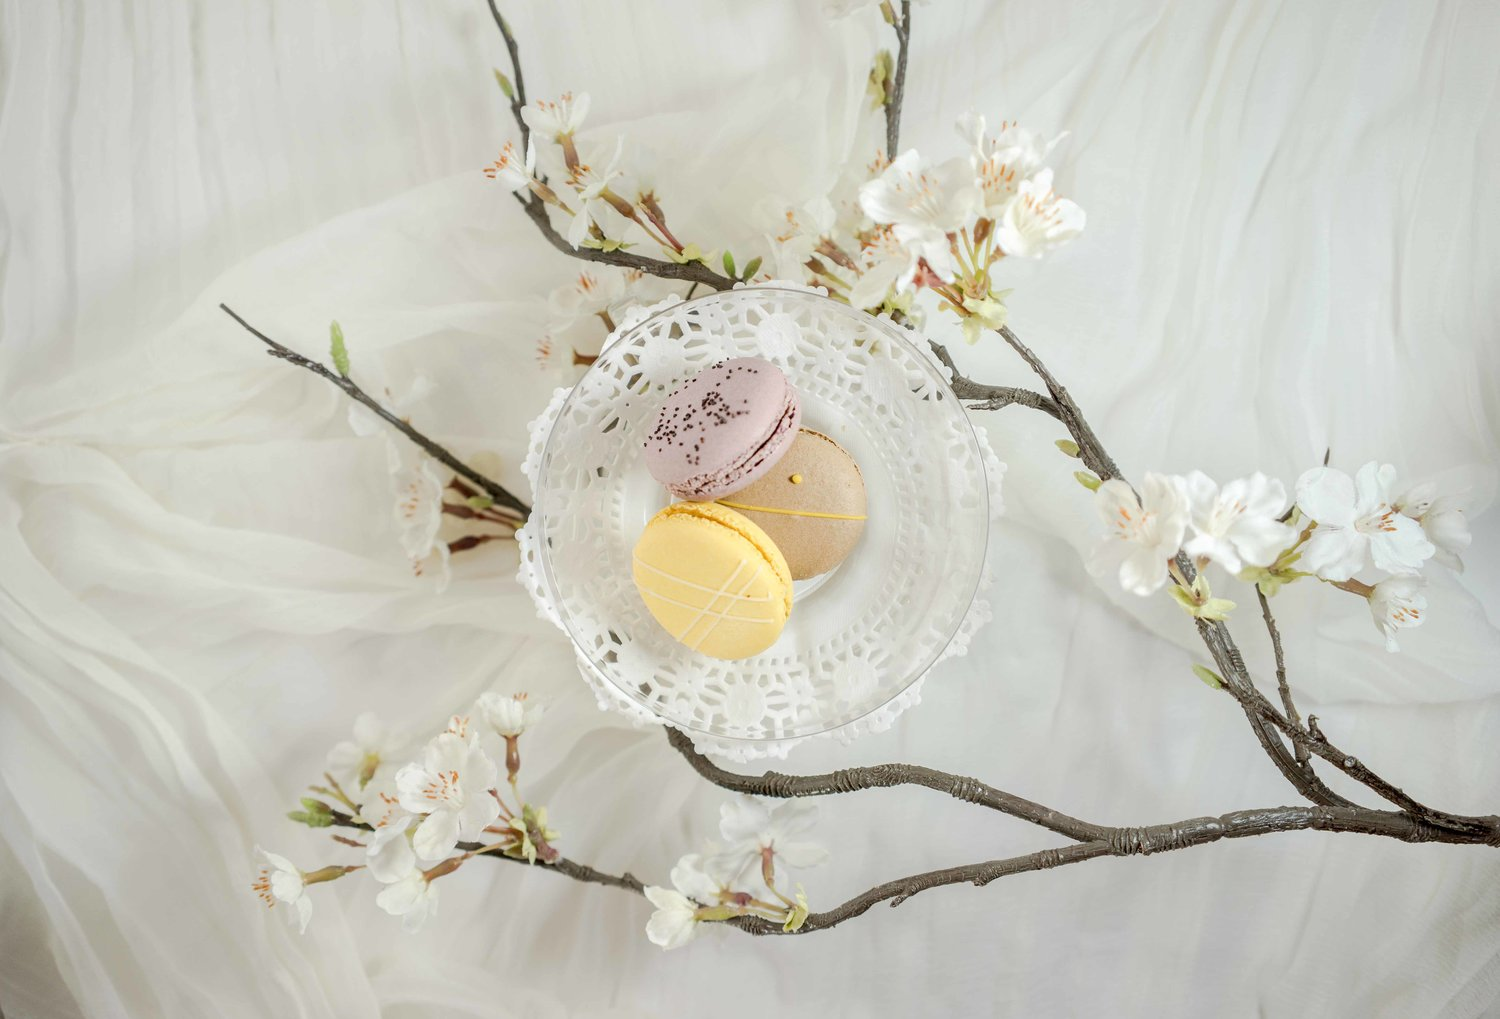 spring-special-macarons-photography-by-afewgoodclicks-net